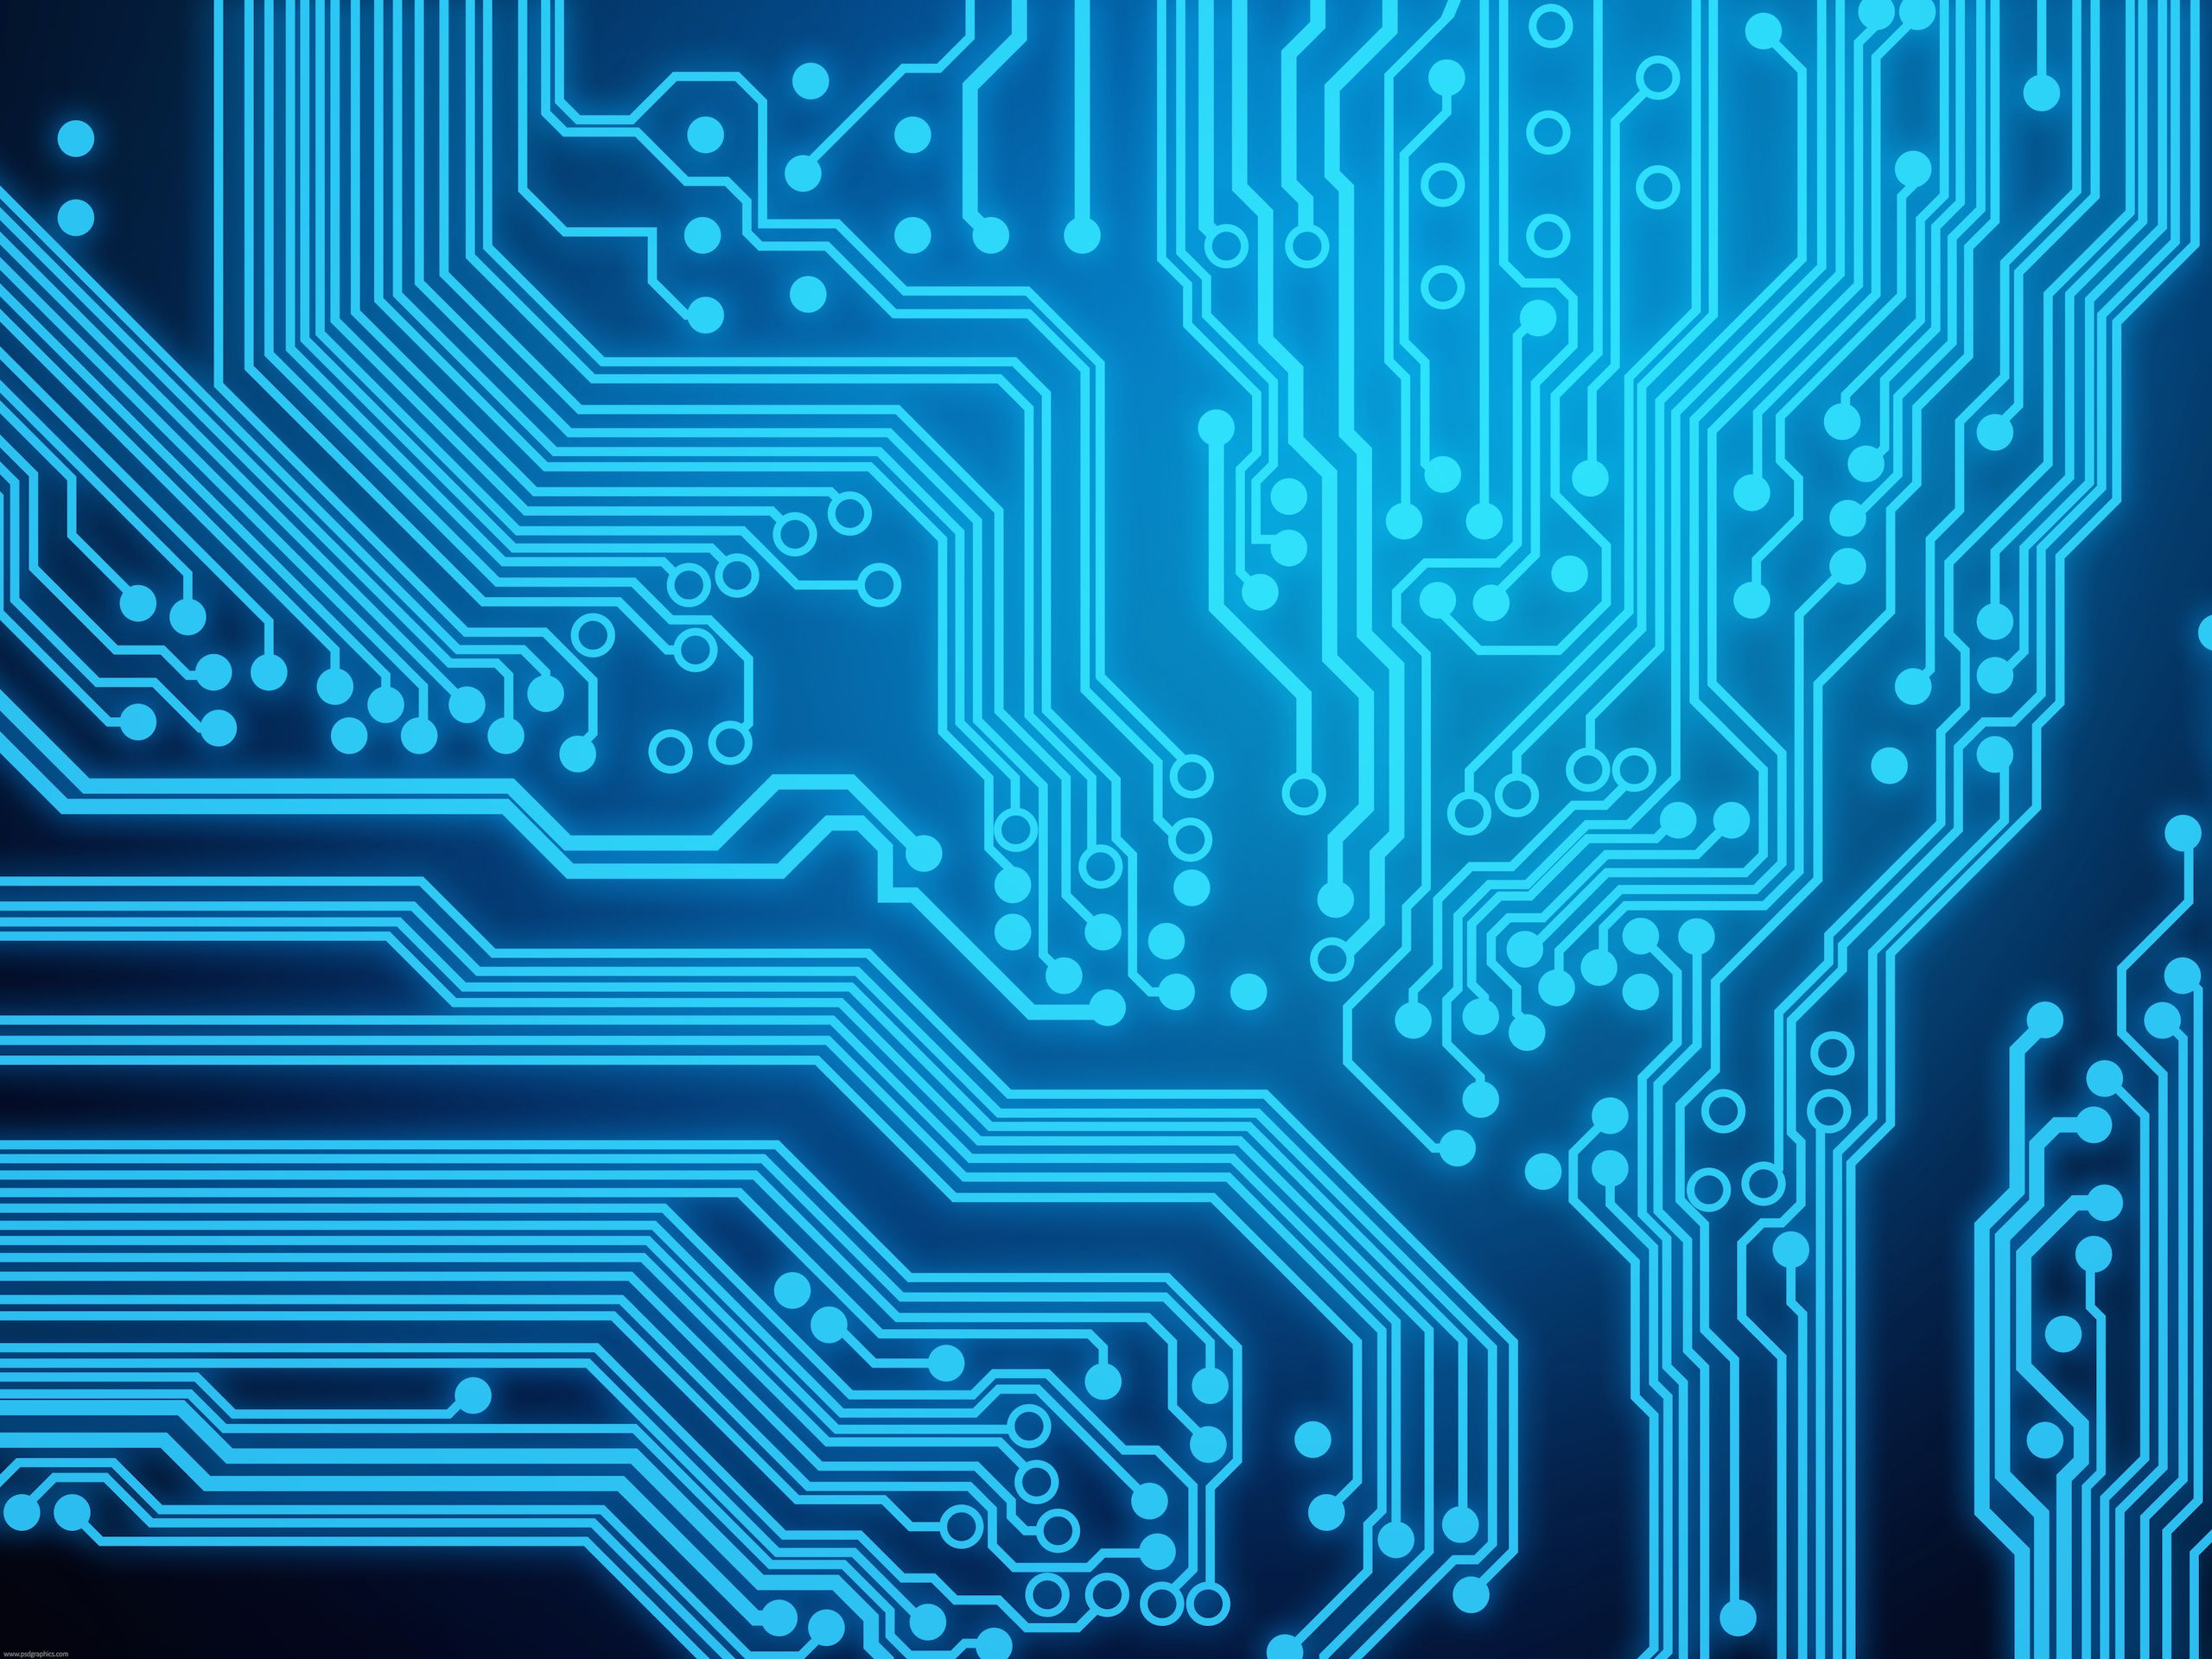 Related image Circuit board, Circuit, Blue aesthetic